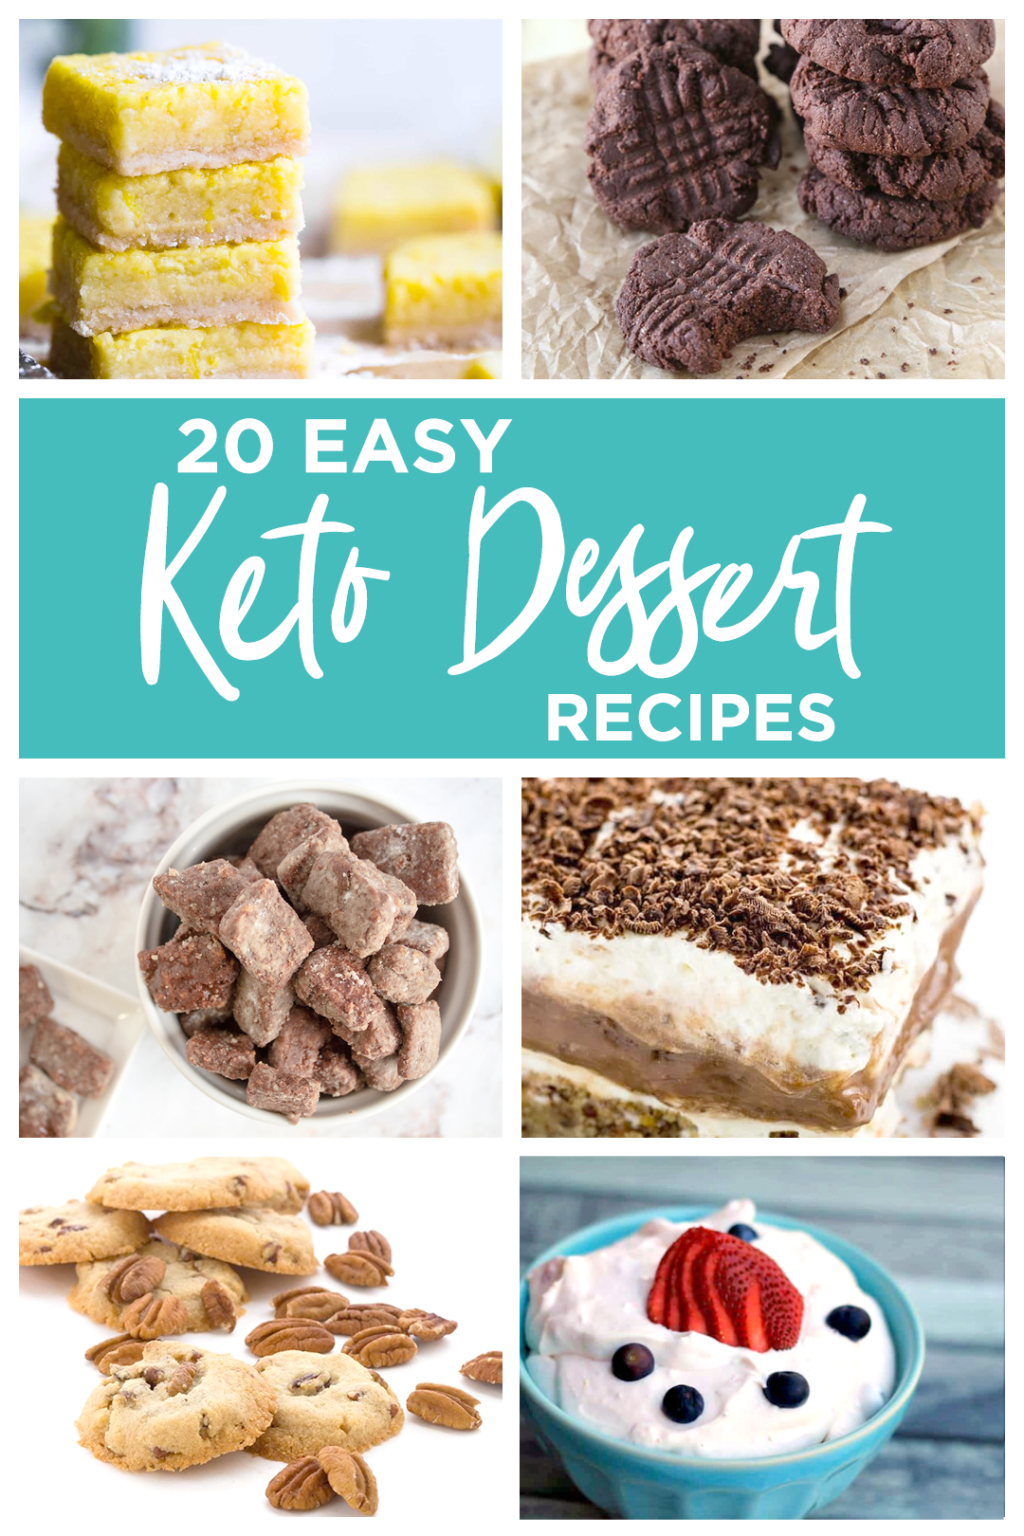 If you are health conscious, you've probably tried or are currently trying the ketogenic diet (keto diet) and love it. Try these easy keto dessert recipes! #ketorecipes #ketodiet #ketofriendly